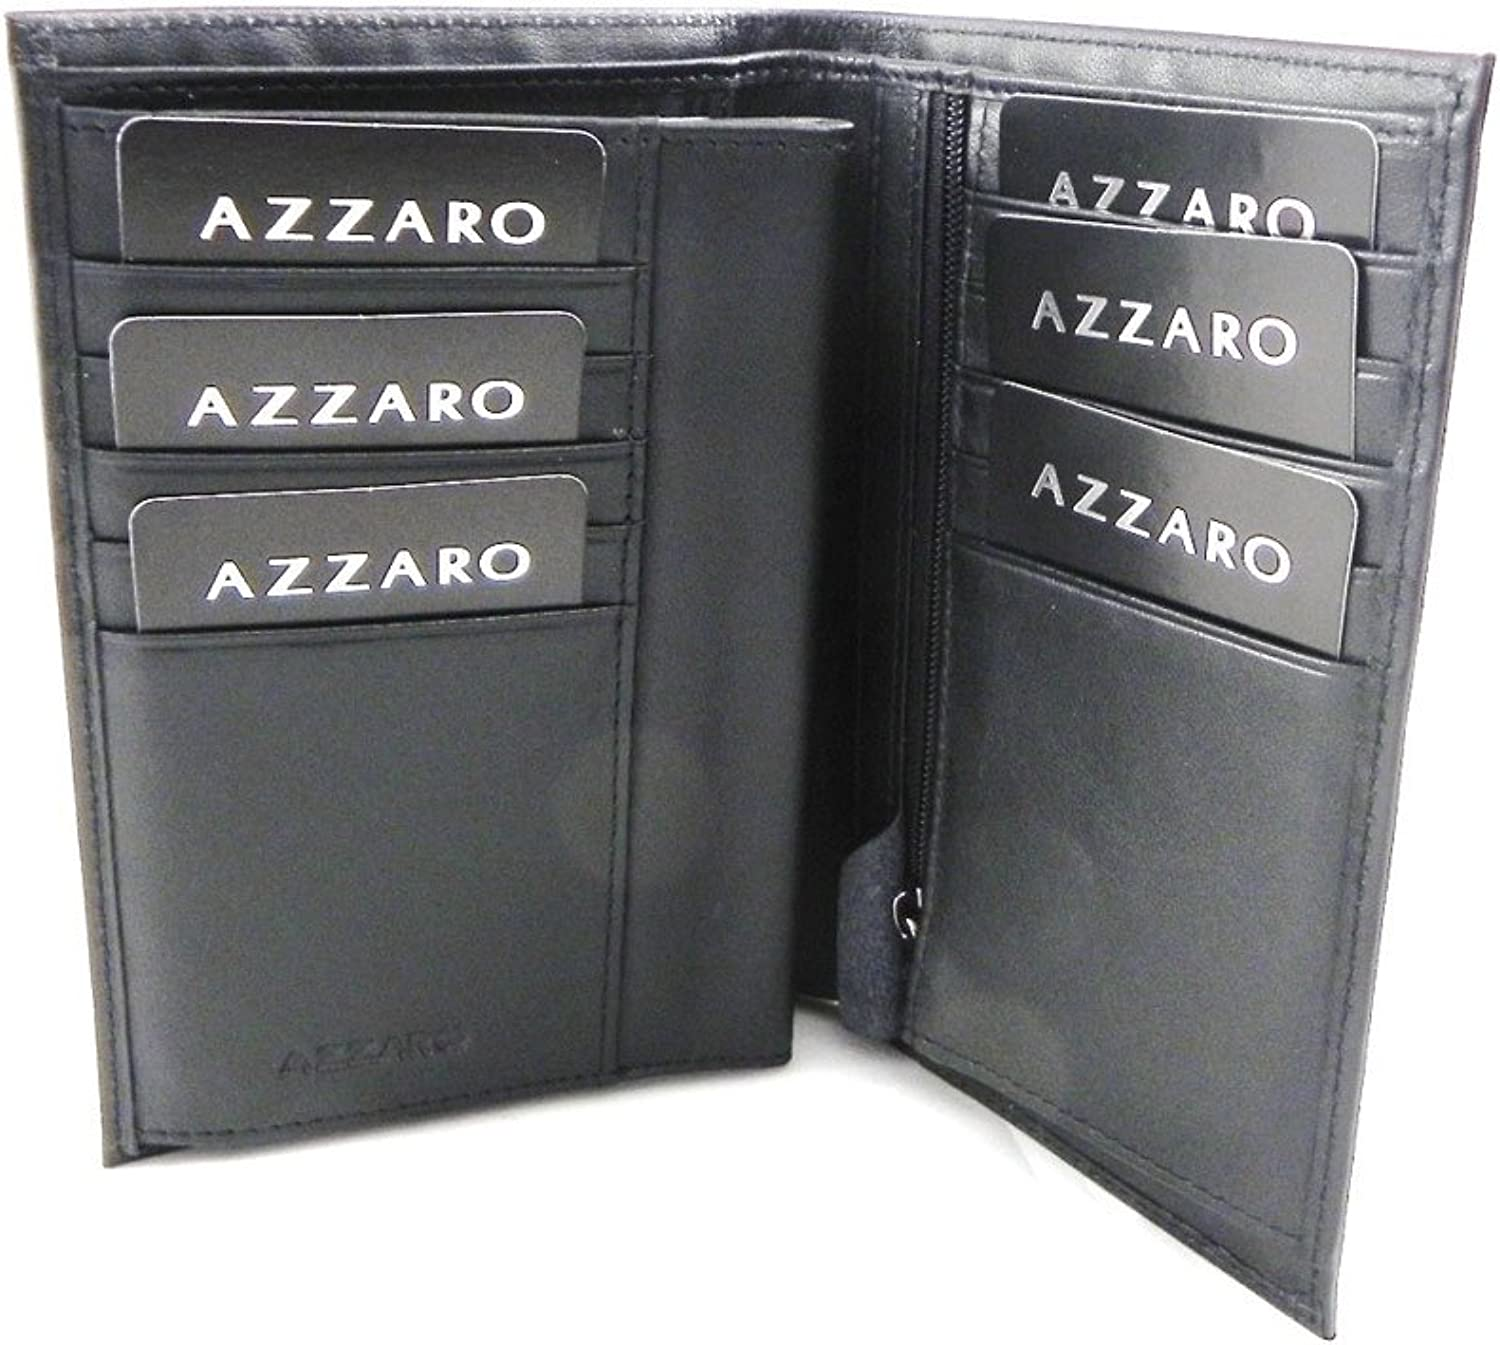 Azzaro [H9727]  Grand wallet 'Azzaro' black (3 parts).